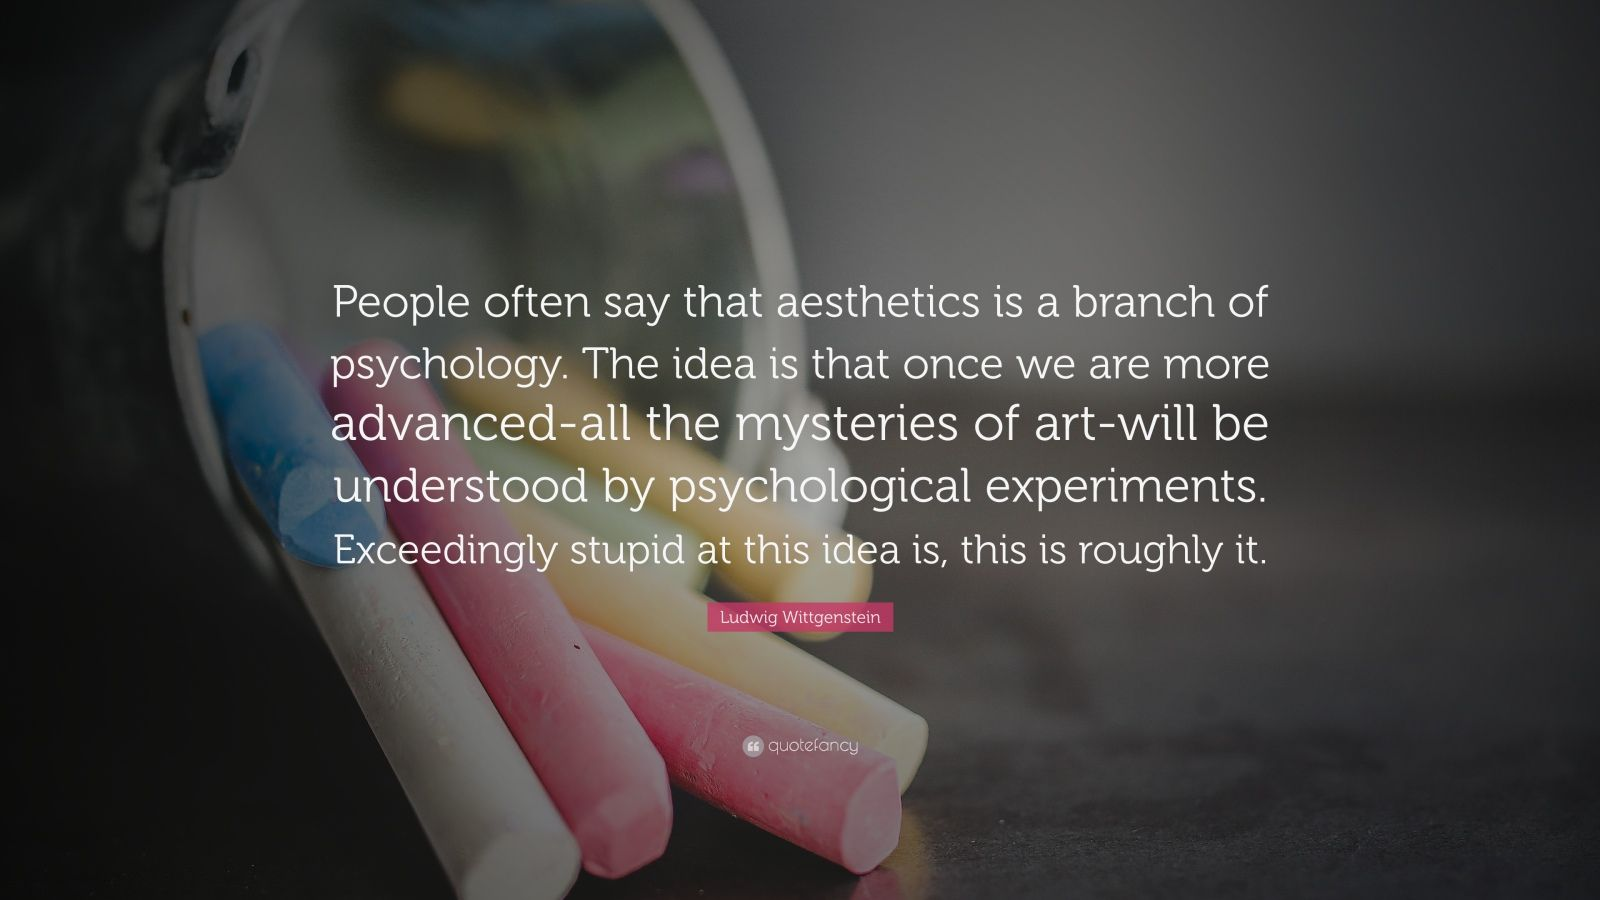 """Ludwig Wittgenstein Quote: """"People often say that aesthetics is a branch of psychology. The idea is that once we are more advanced-all the mysteries of art-will be understood by psychological experiments. Exceedingly stupid at this idea is, this is roughly it."""""""